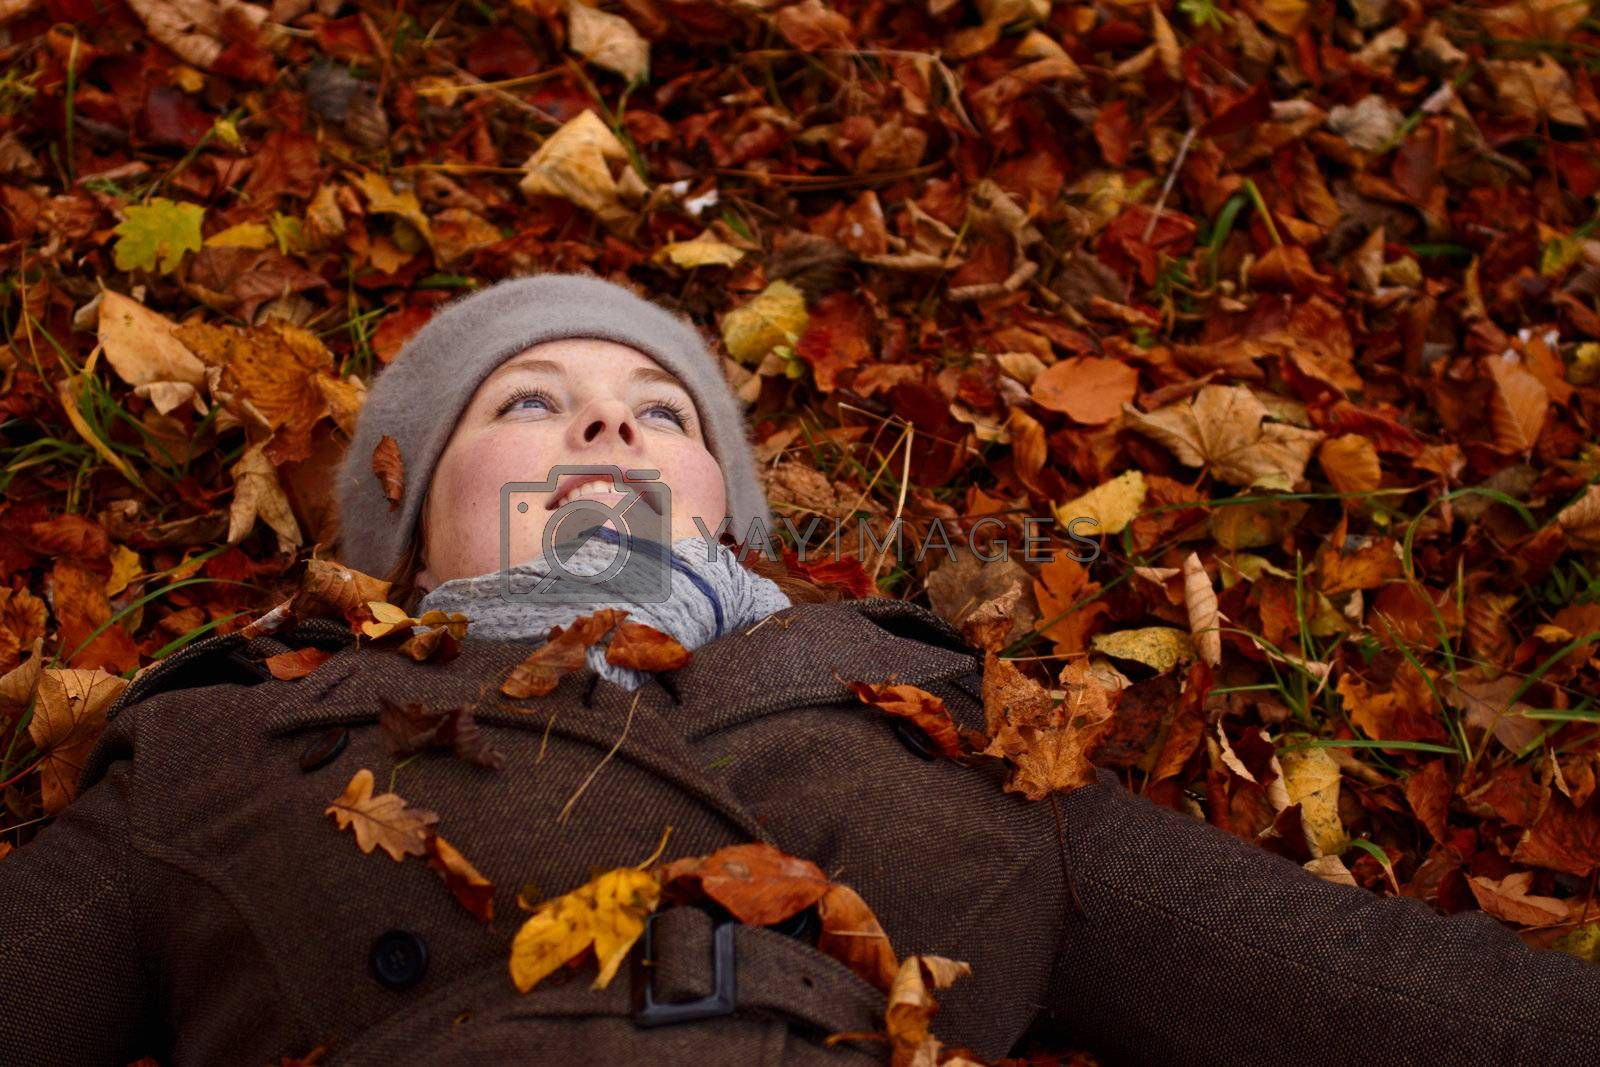 Royalty free image of Fall - young woman lying down in leaves by FreedomImage